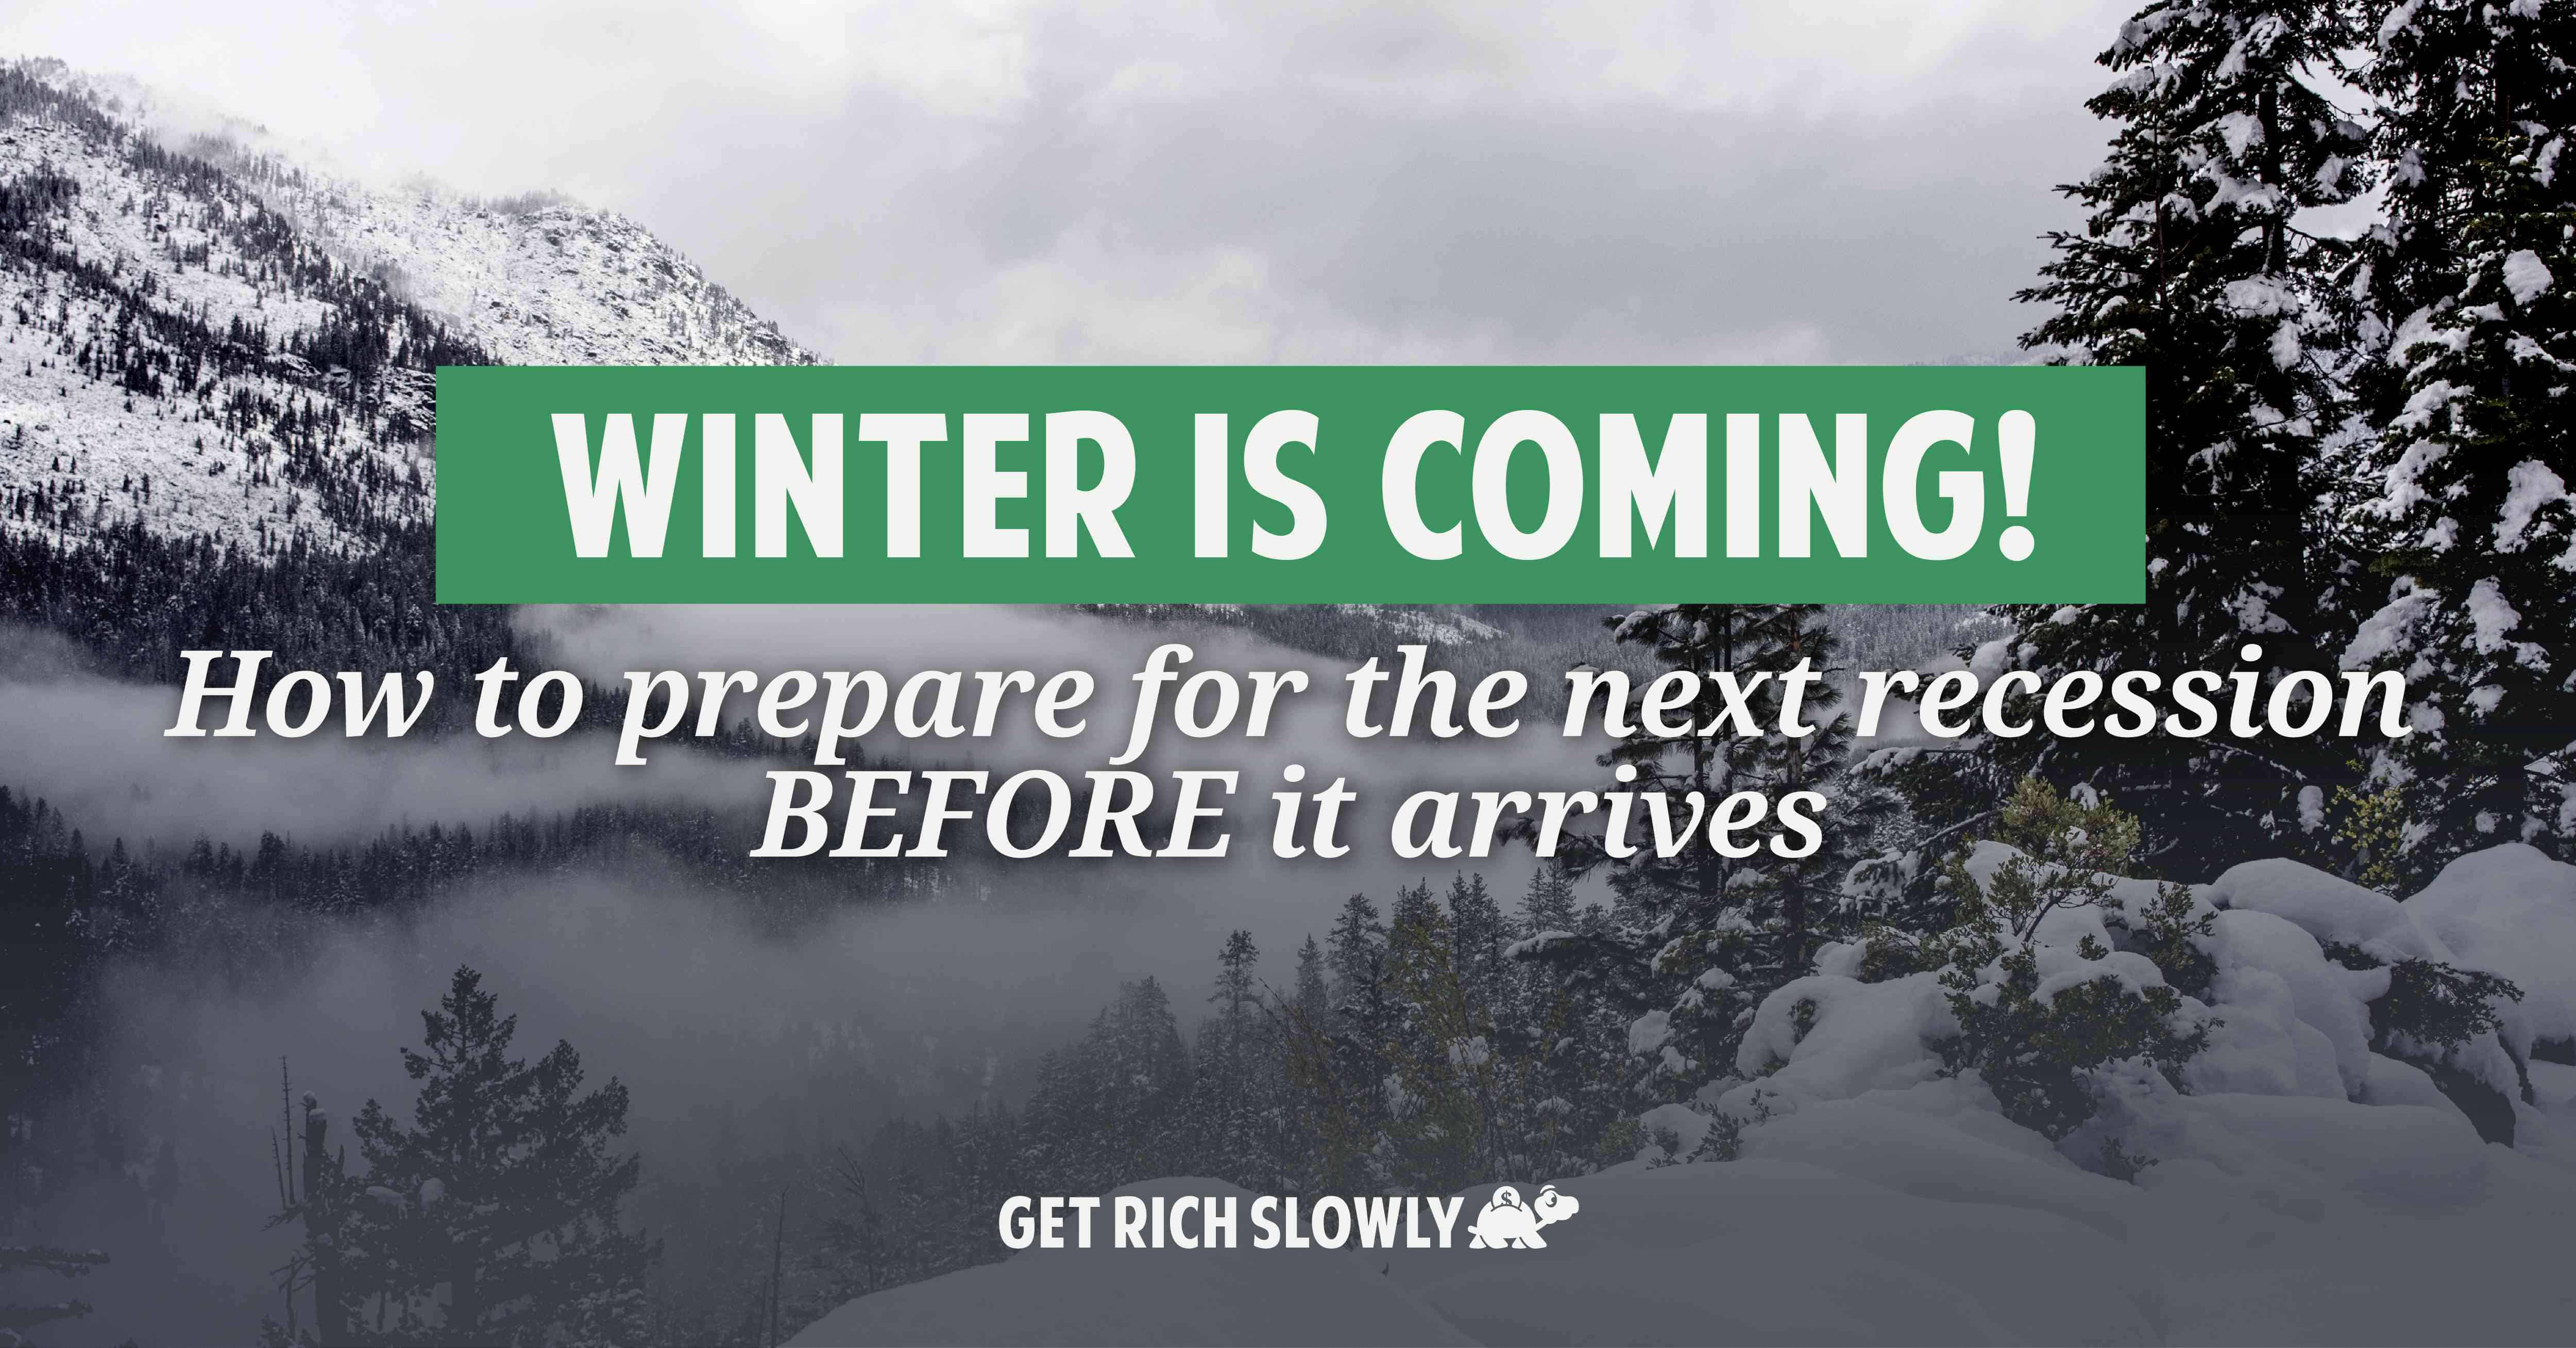 Winter is coming! How to prepare for the next recession BEFORE it arrives